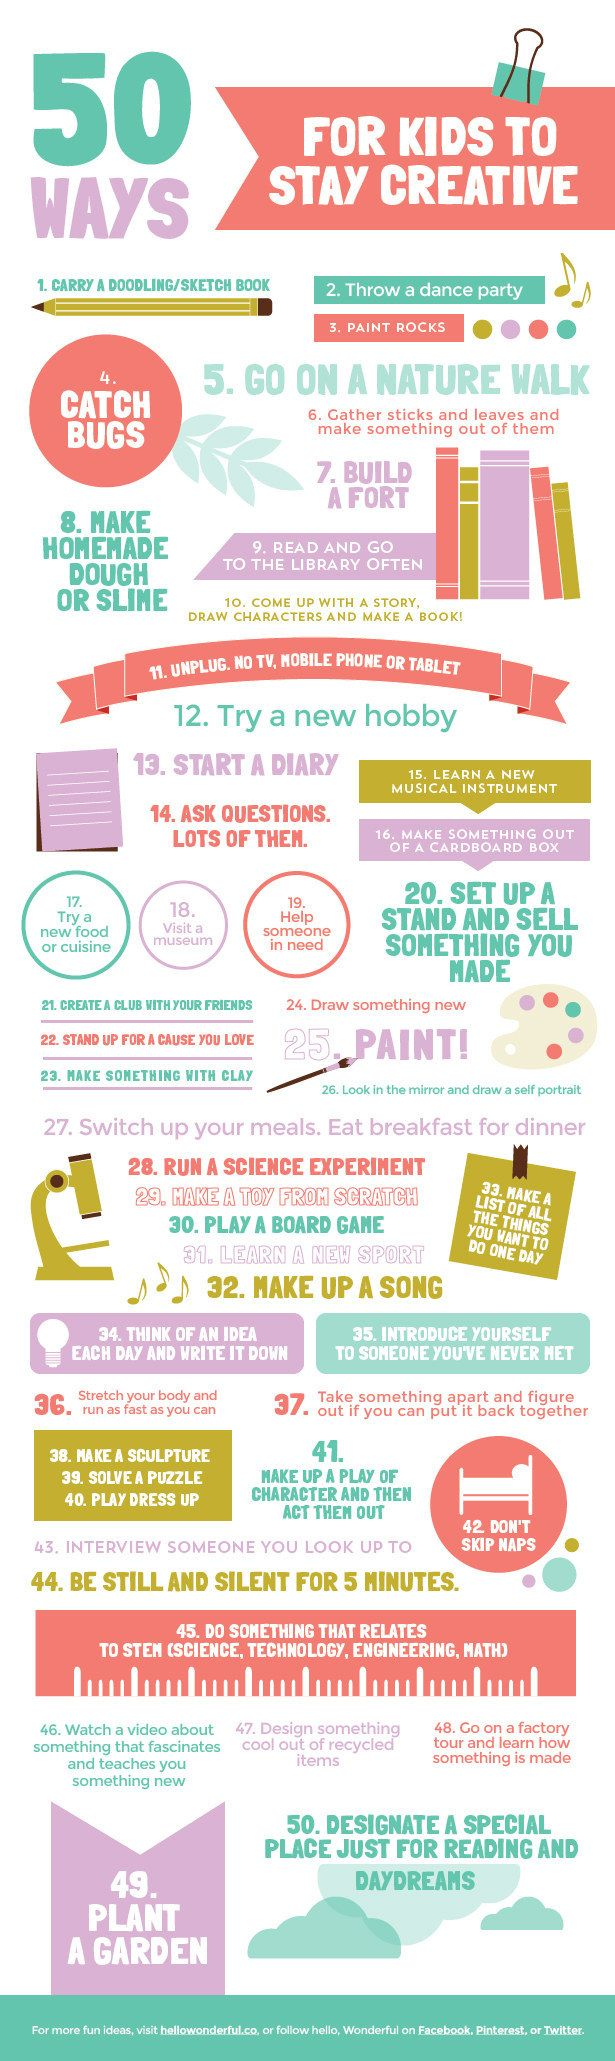 Here's some creative ways to get creative again:   15 Charts All Creative People Definitely Need